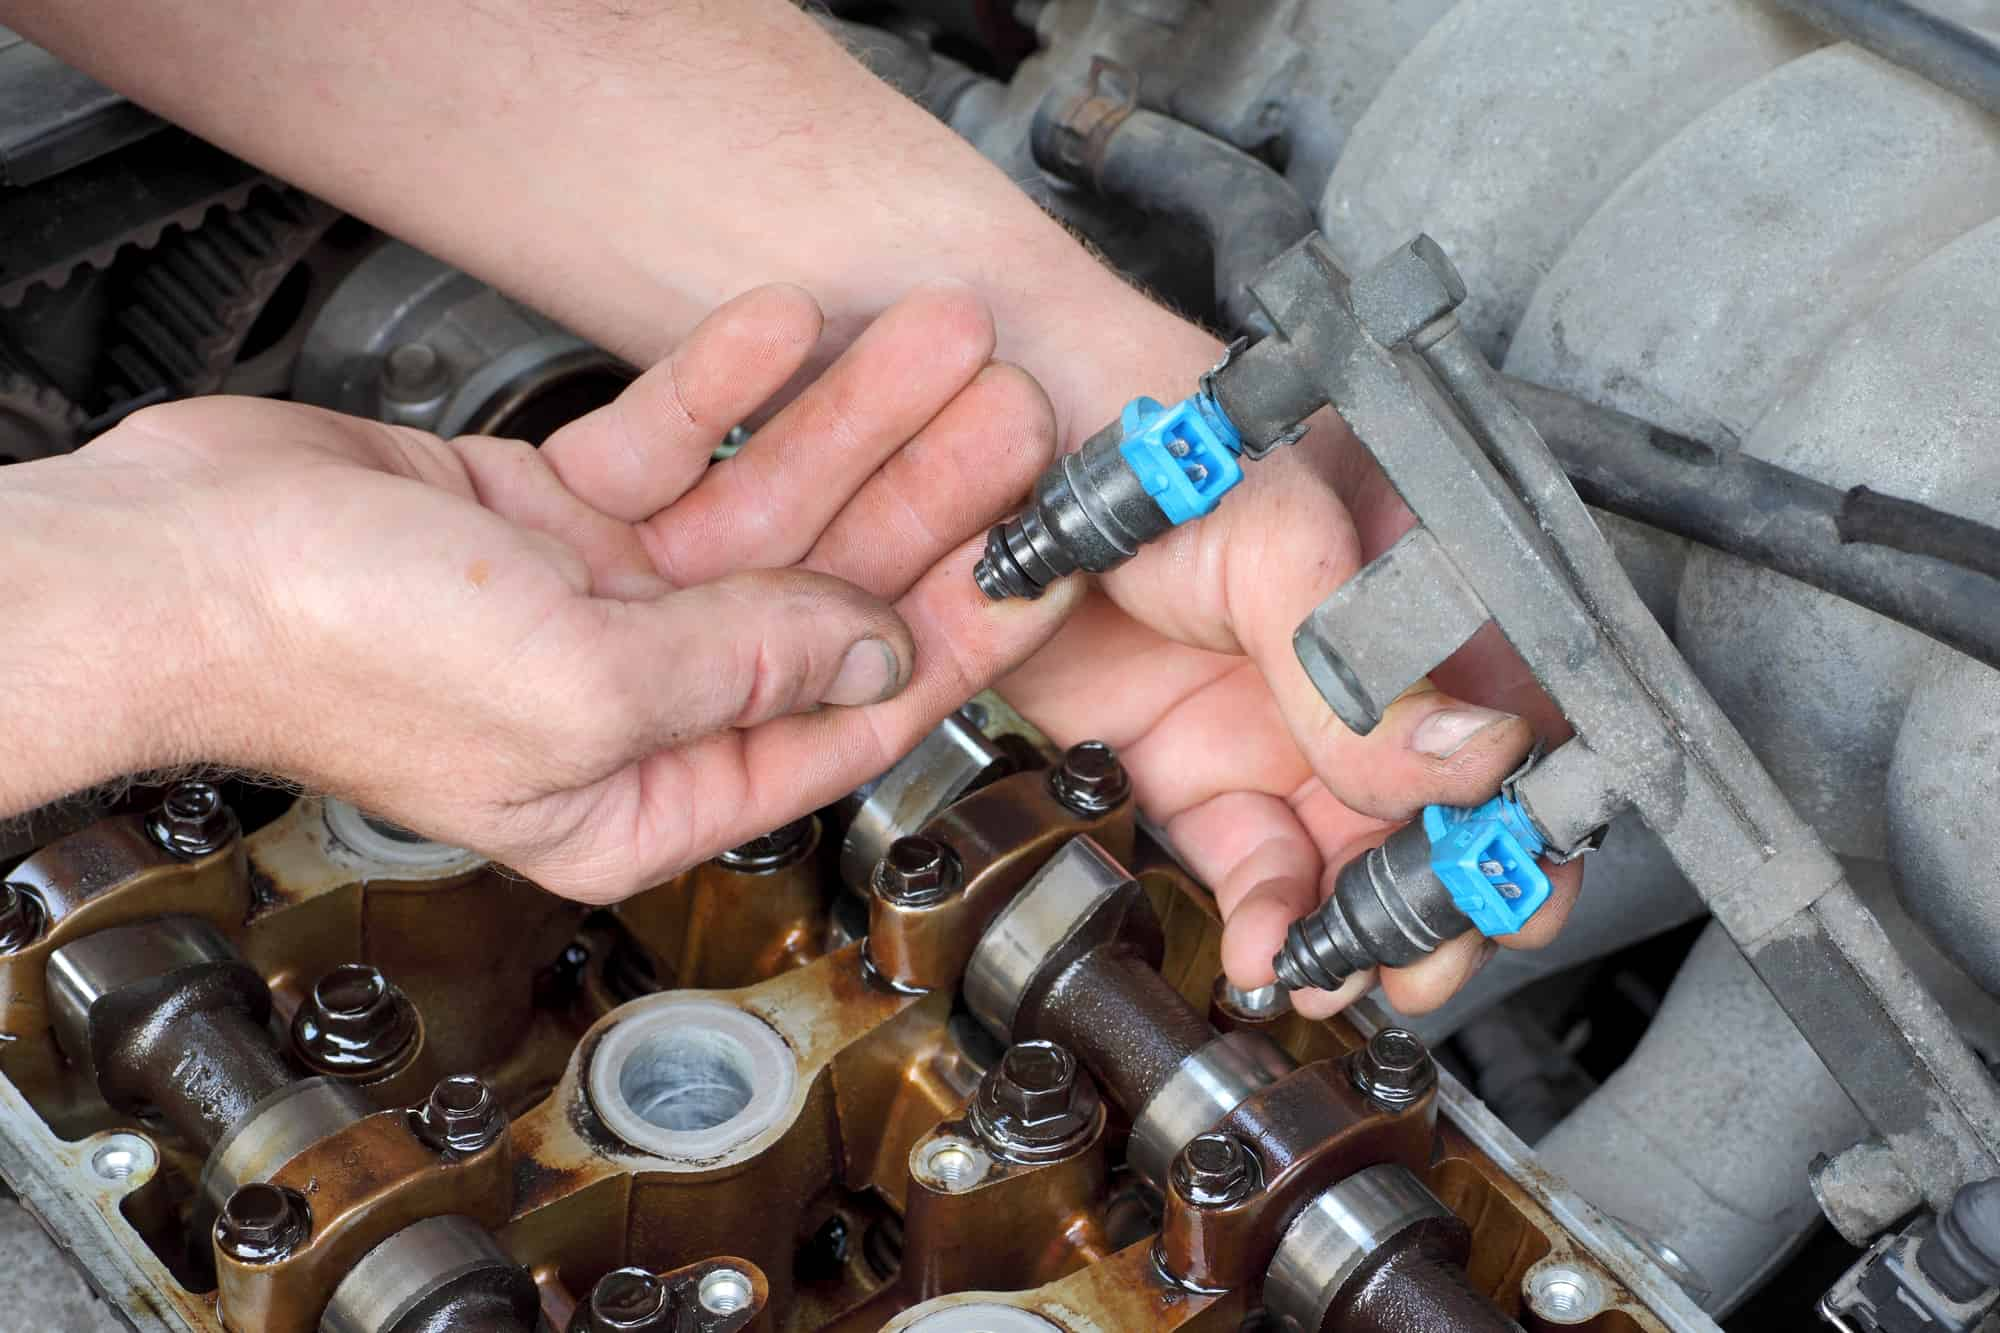 Bad Diesel Set Bad Fuel Injectors How To Diagnose And Fix The Motor Guy